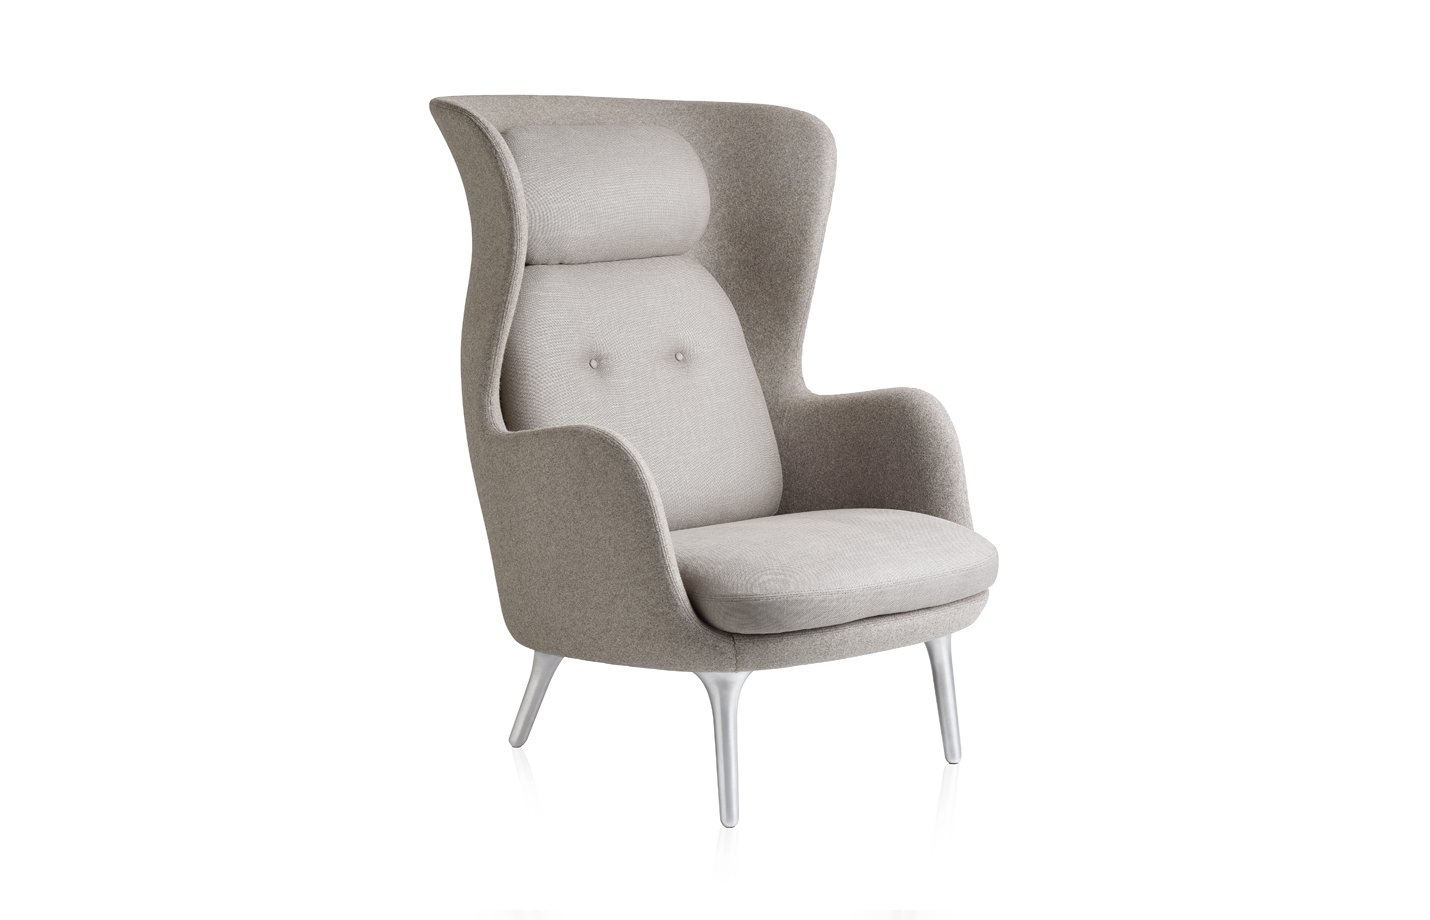 Ro lounge chair – light Grey